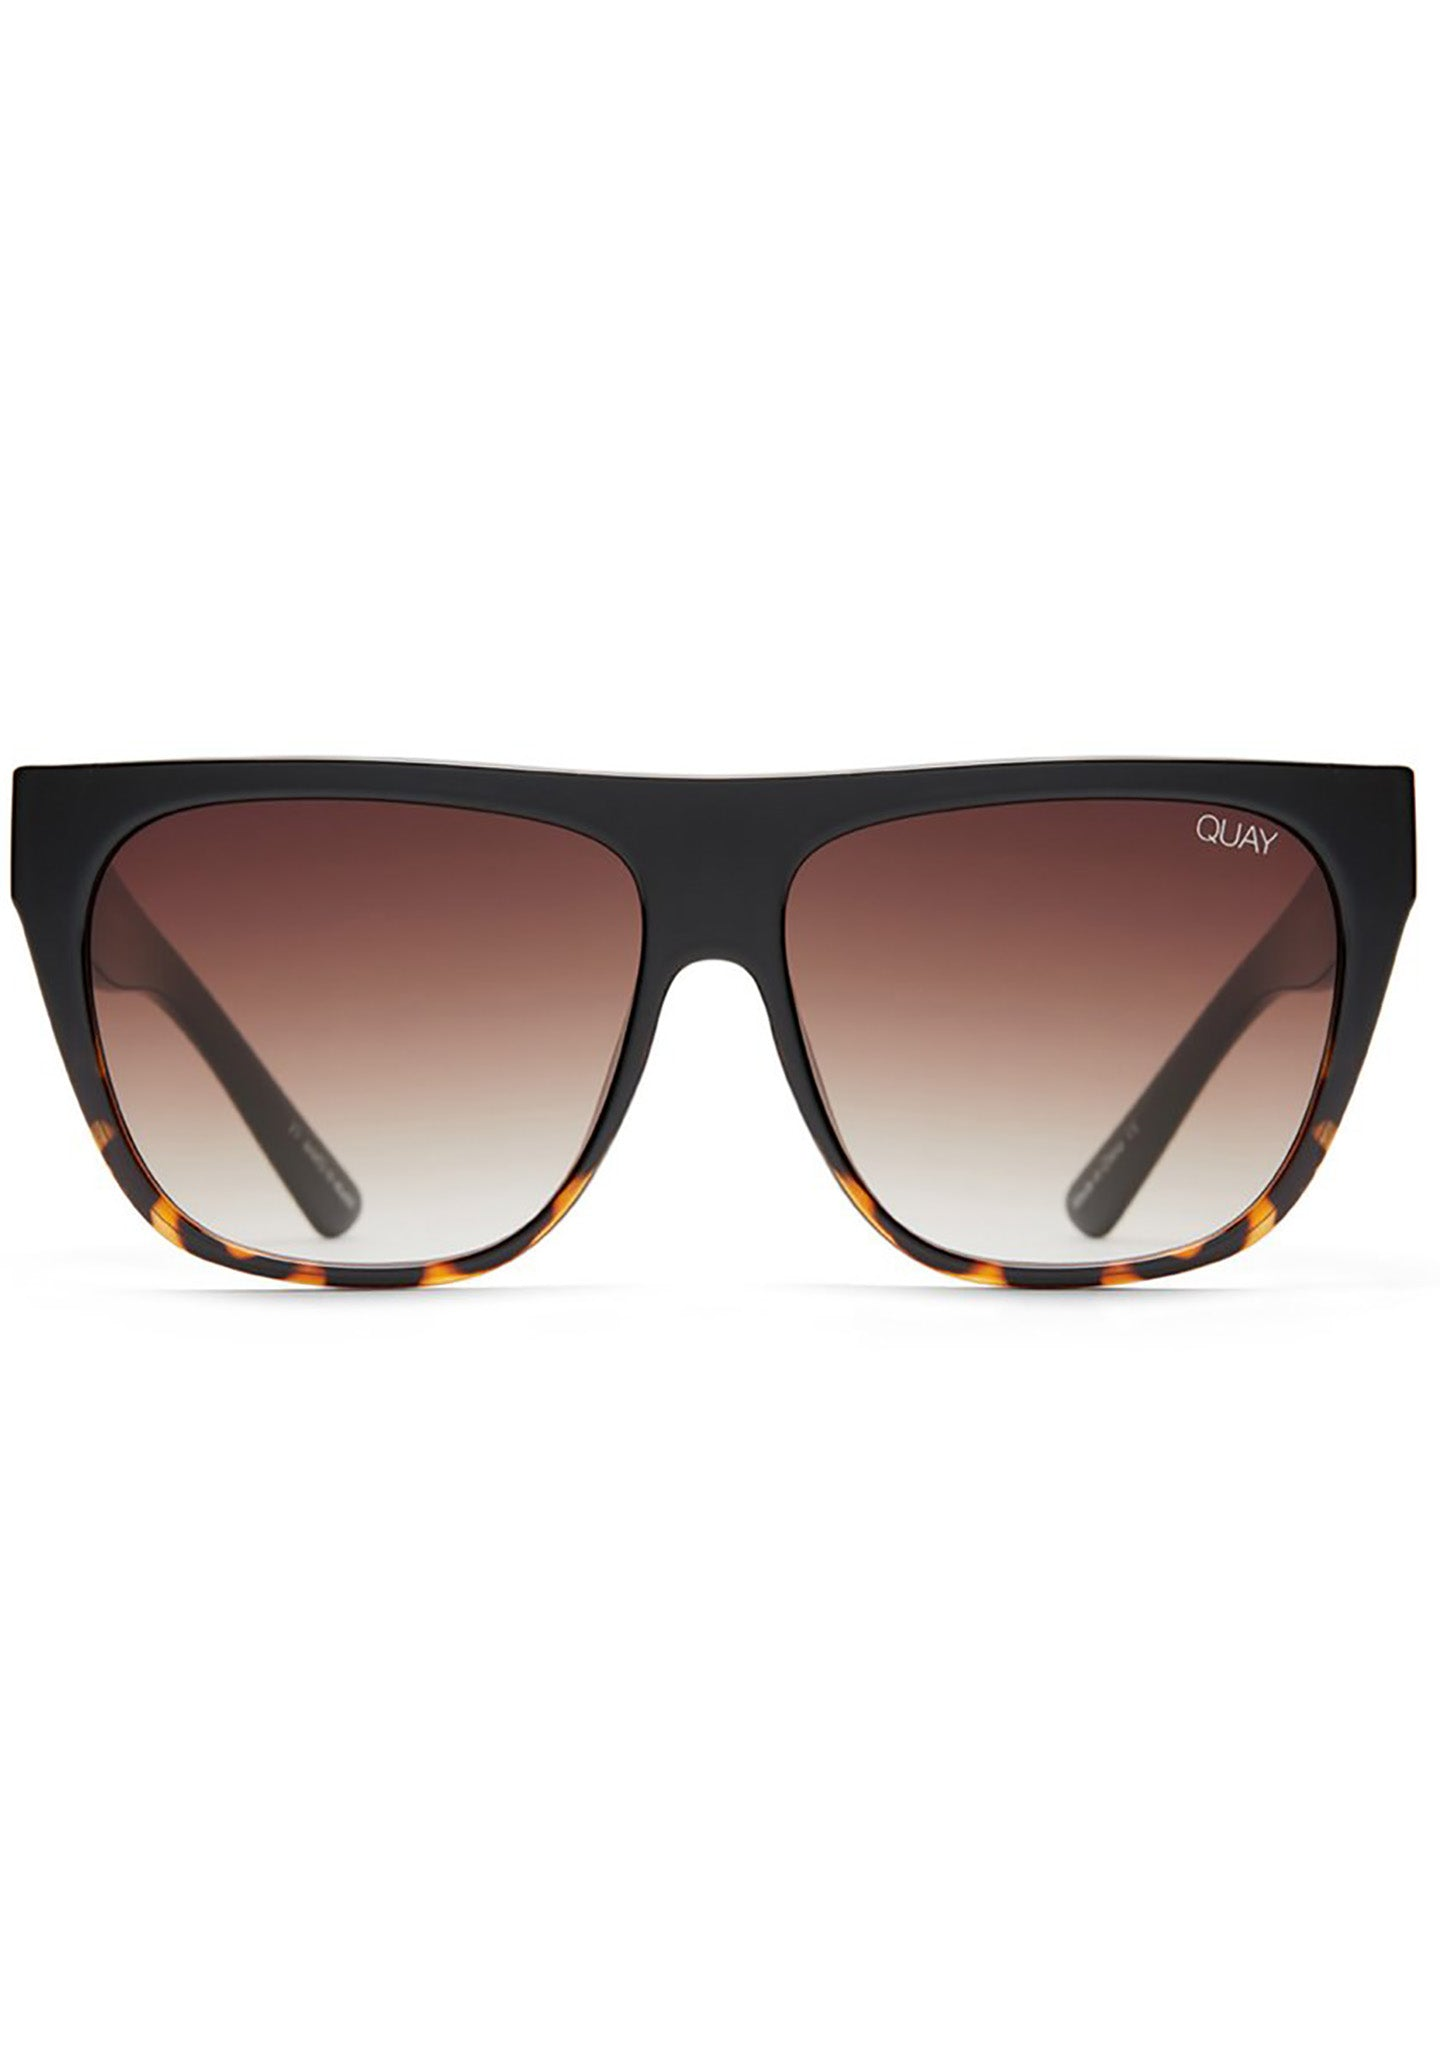 X Tony Bianco Drama By Day Sunglasses in Tortoise/Brown Fade